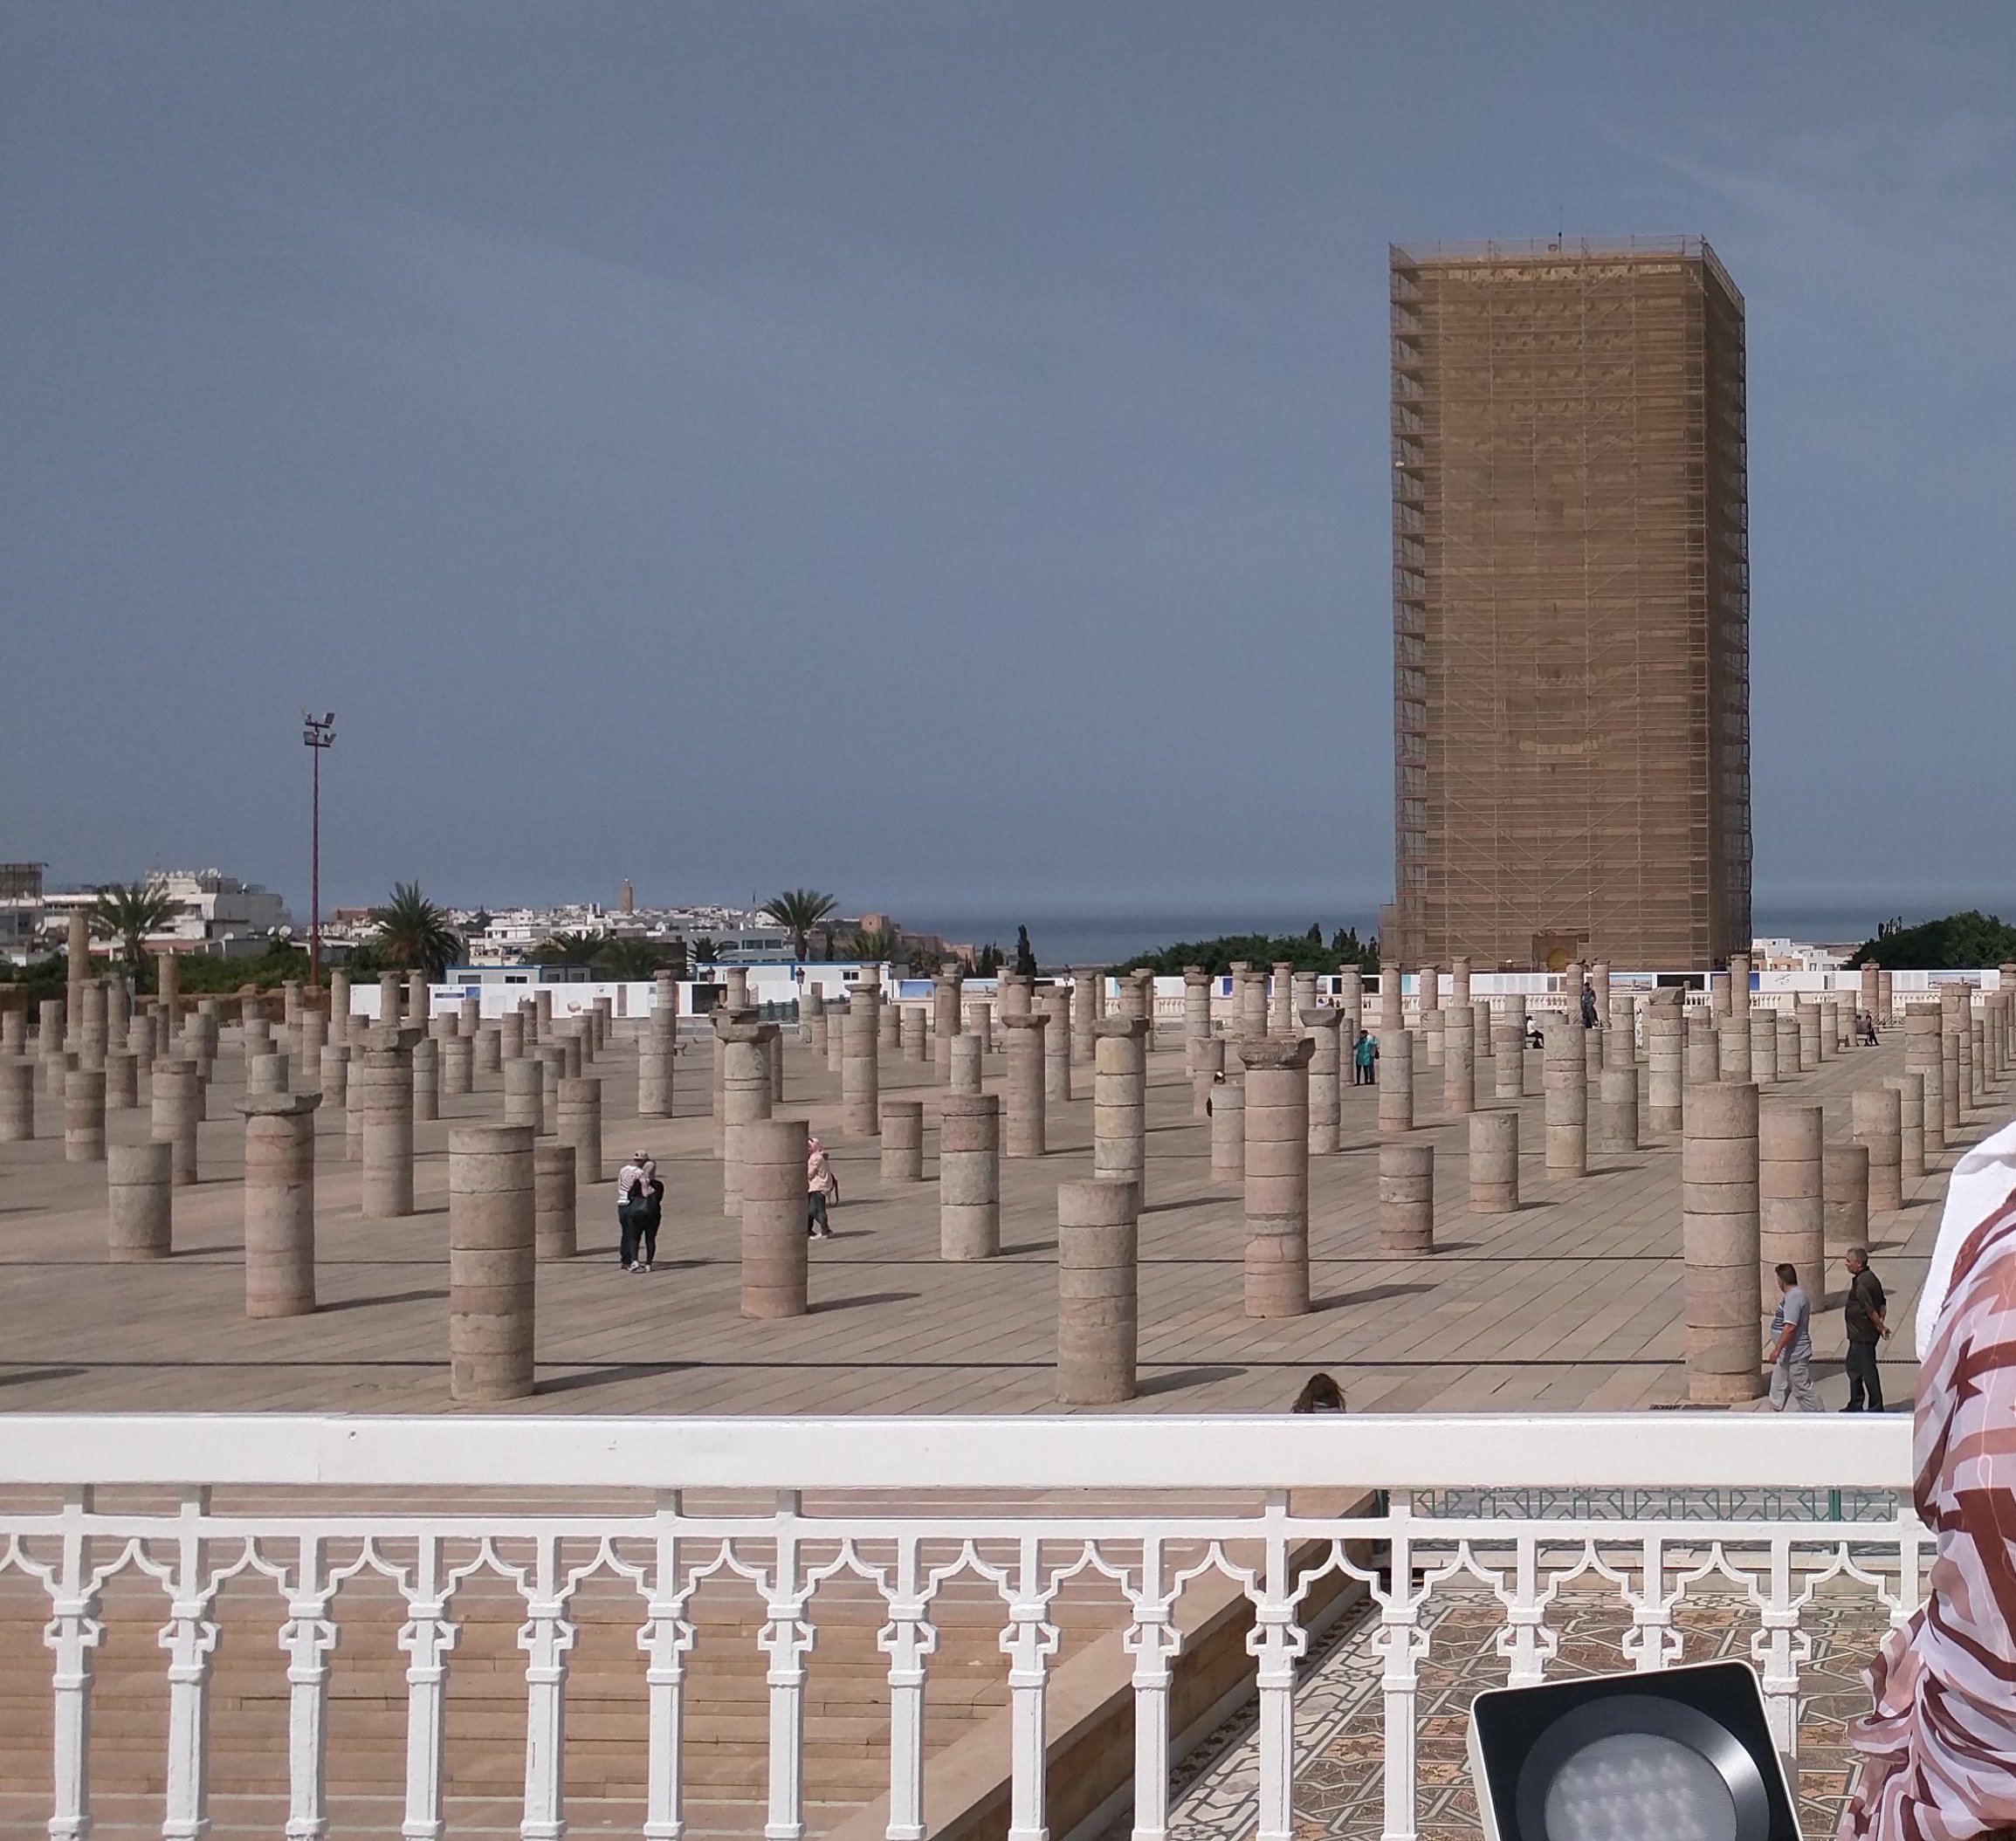 Outside Mausoleum of Mohammed V.  Hassan Tower in the background. Currently under renovation, so covered in scaffolding.